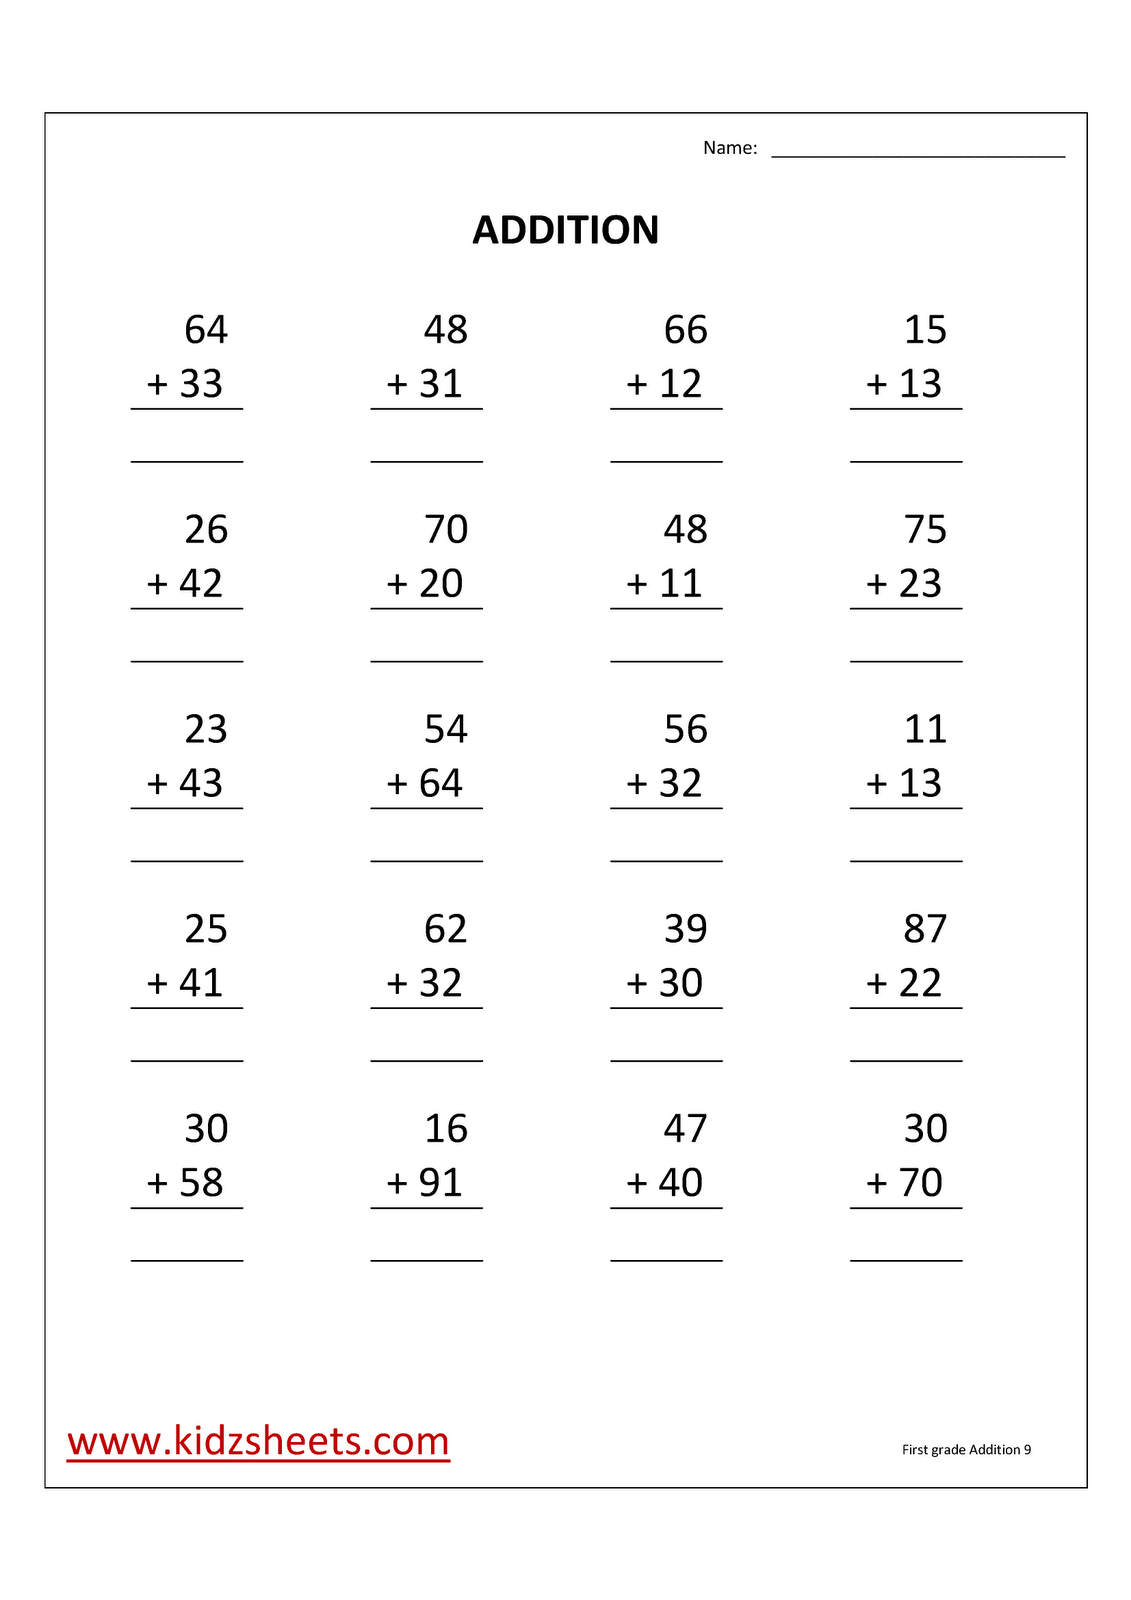 Kidz Worksheets First Grade Addition Worksheet9